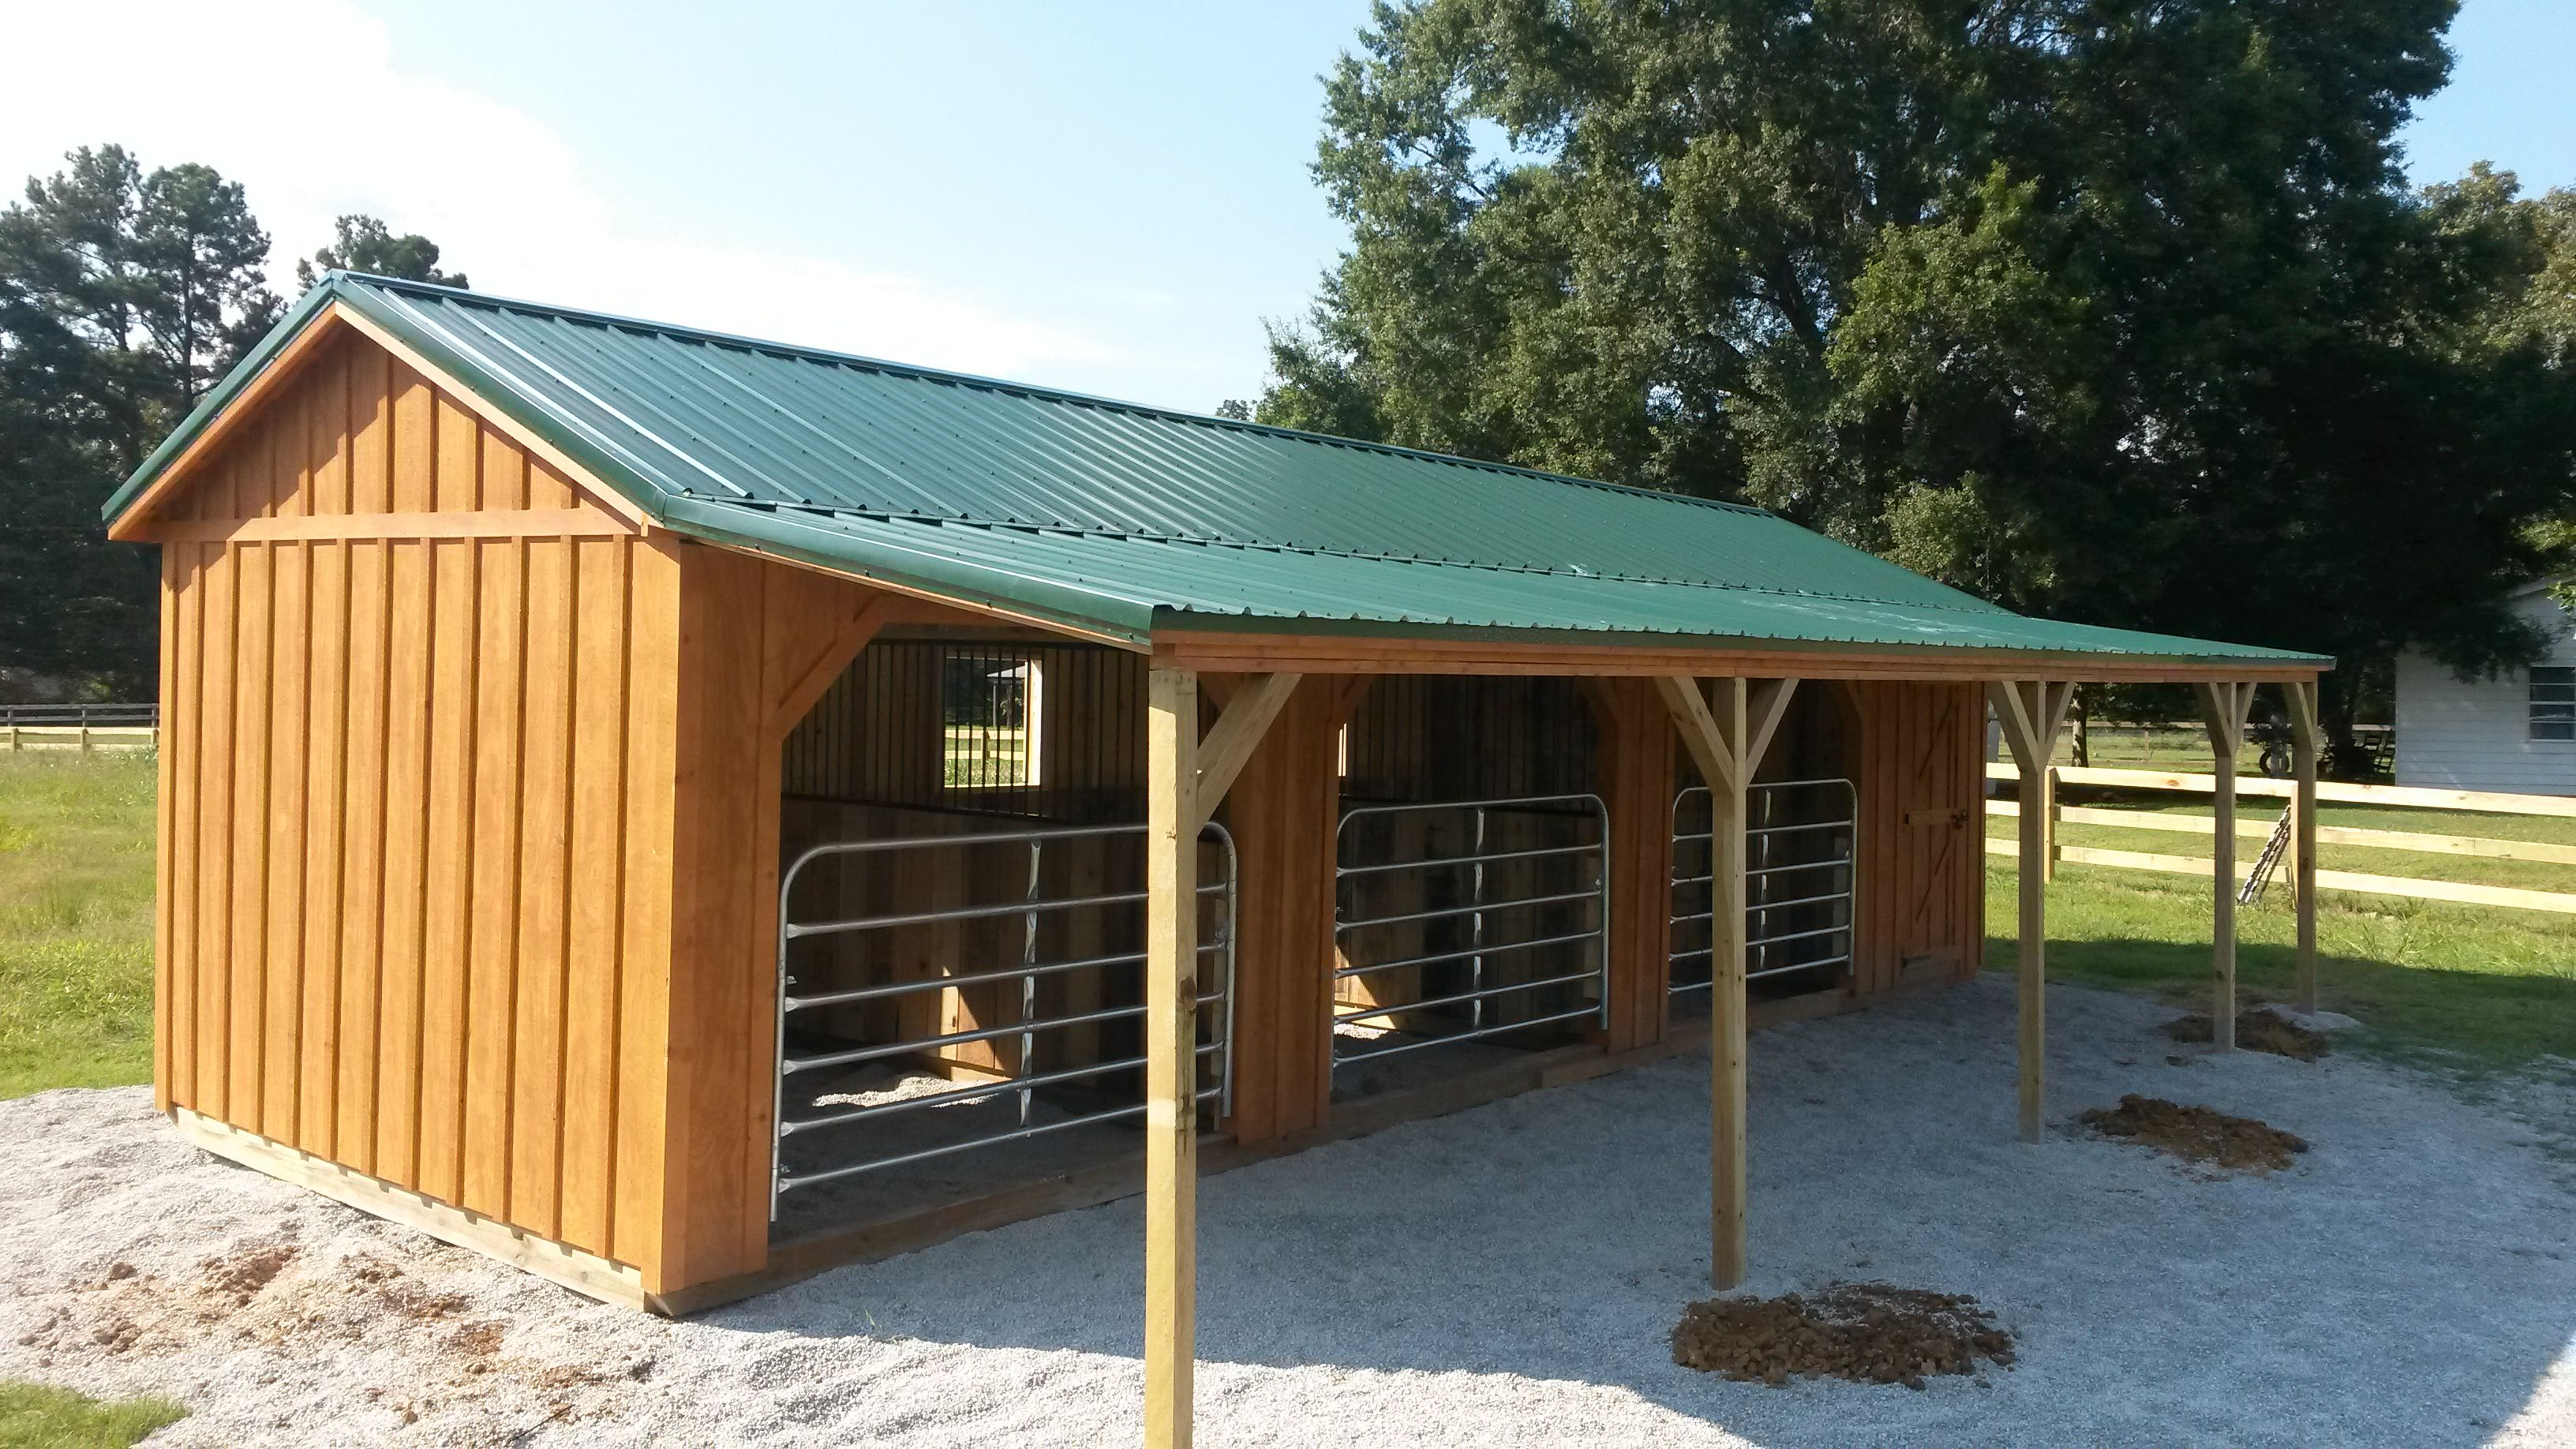 Horse run ins and sheds portable horse barn manufacturer for Small portable shed